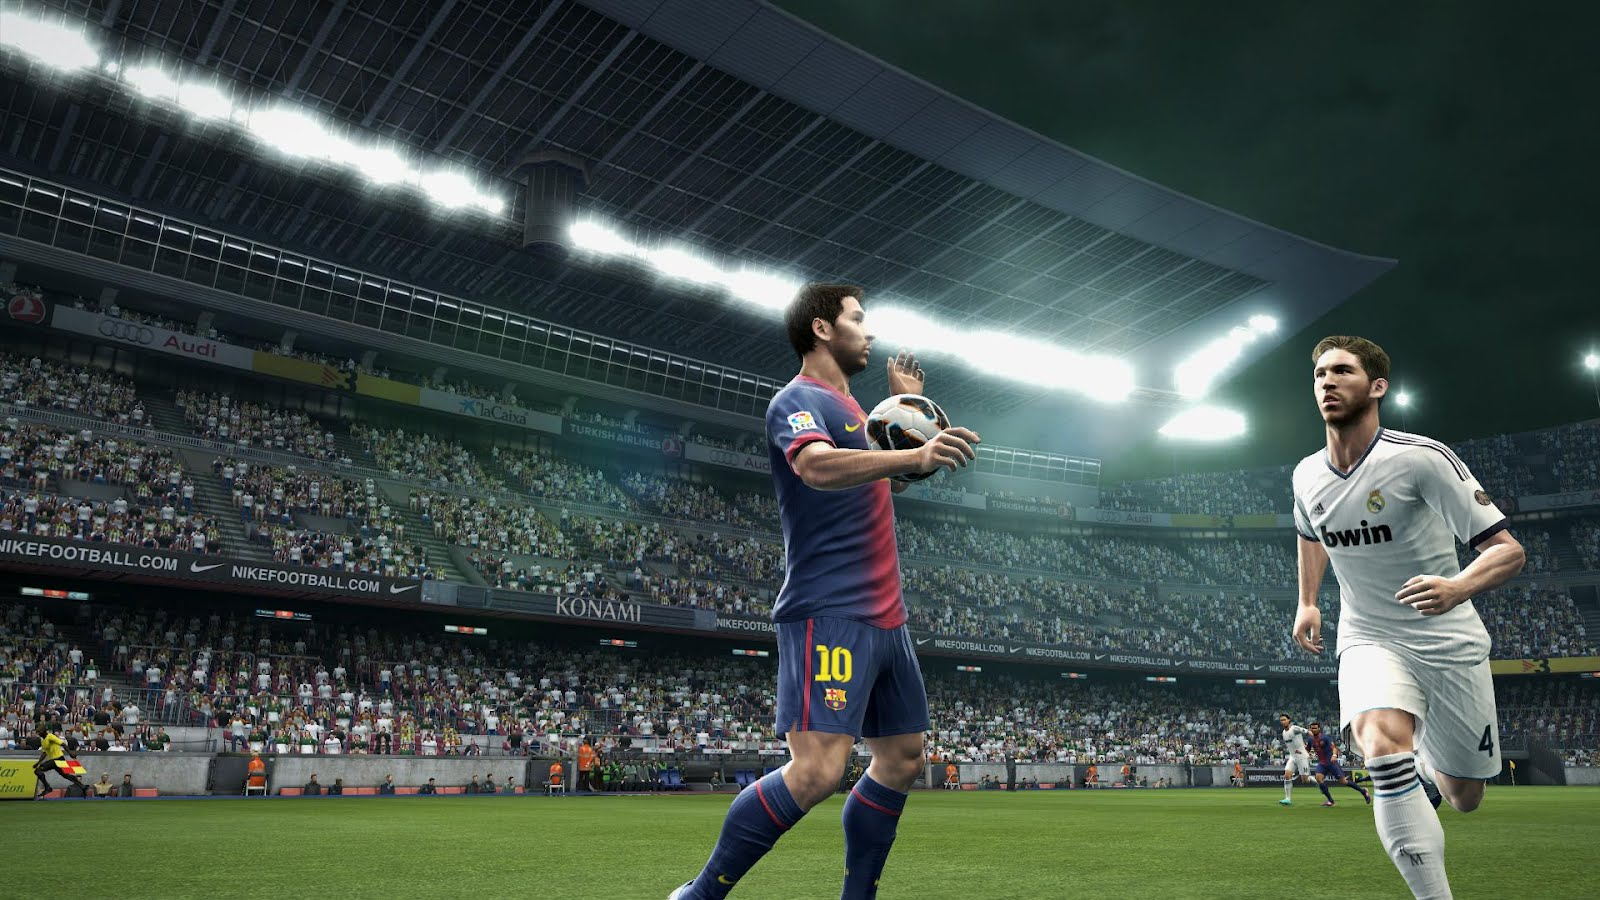 download pes 2013 terbaru untuk pc download patch 12 pes 2013 terbaru